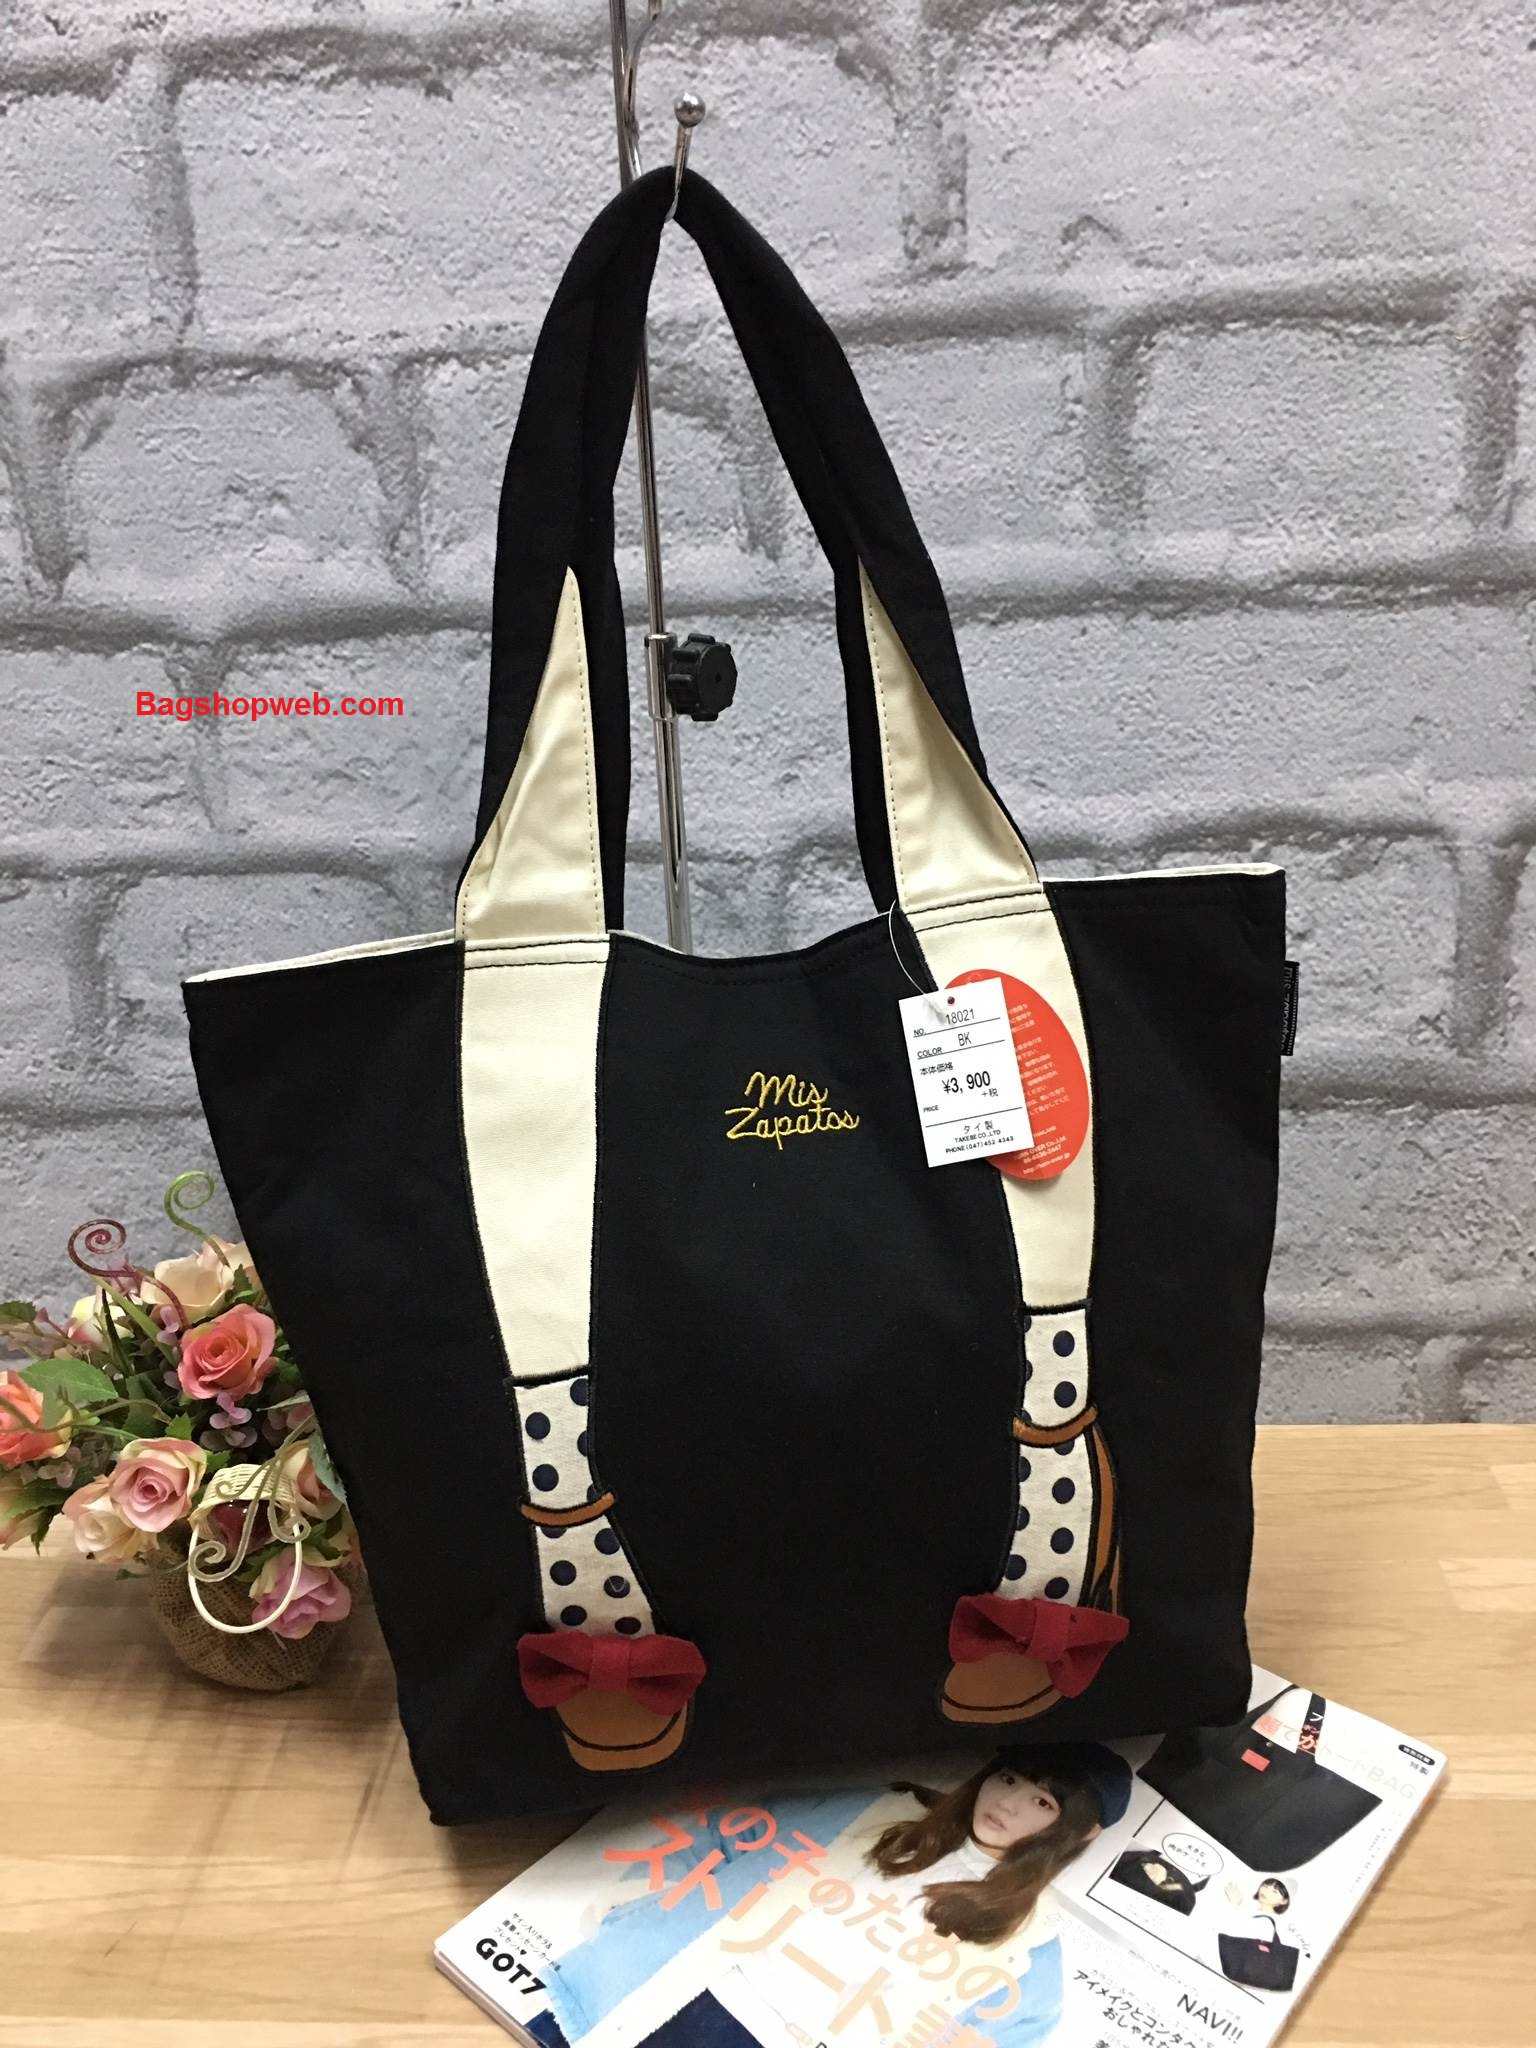 กระเป๋า Mis Zapatos turnovers sweet material shopping bag F ราคา 1,090 บาท Free Ems